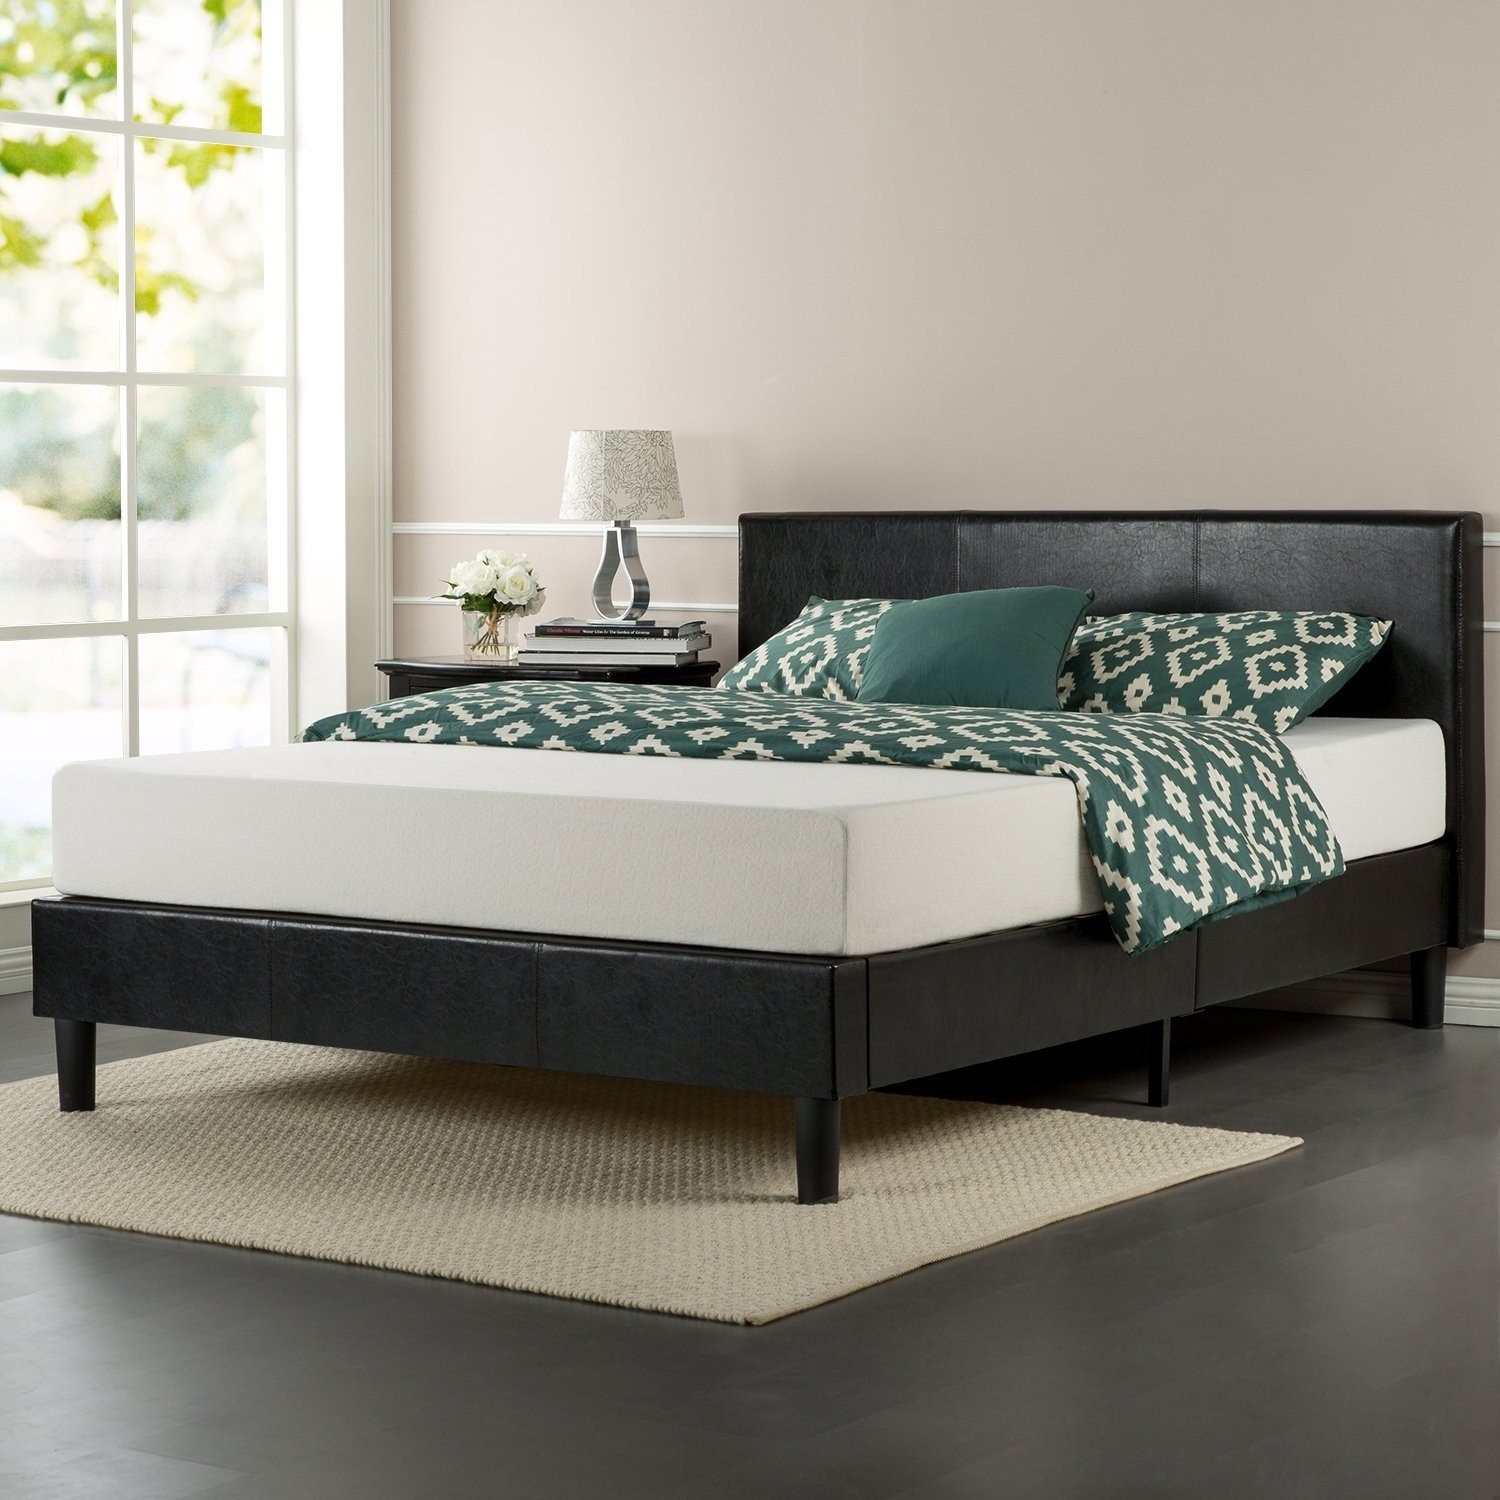 side view of the black faux leather bed frame